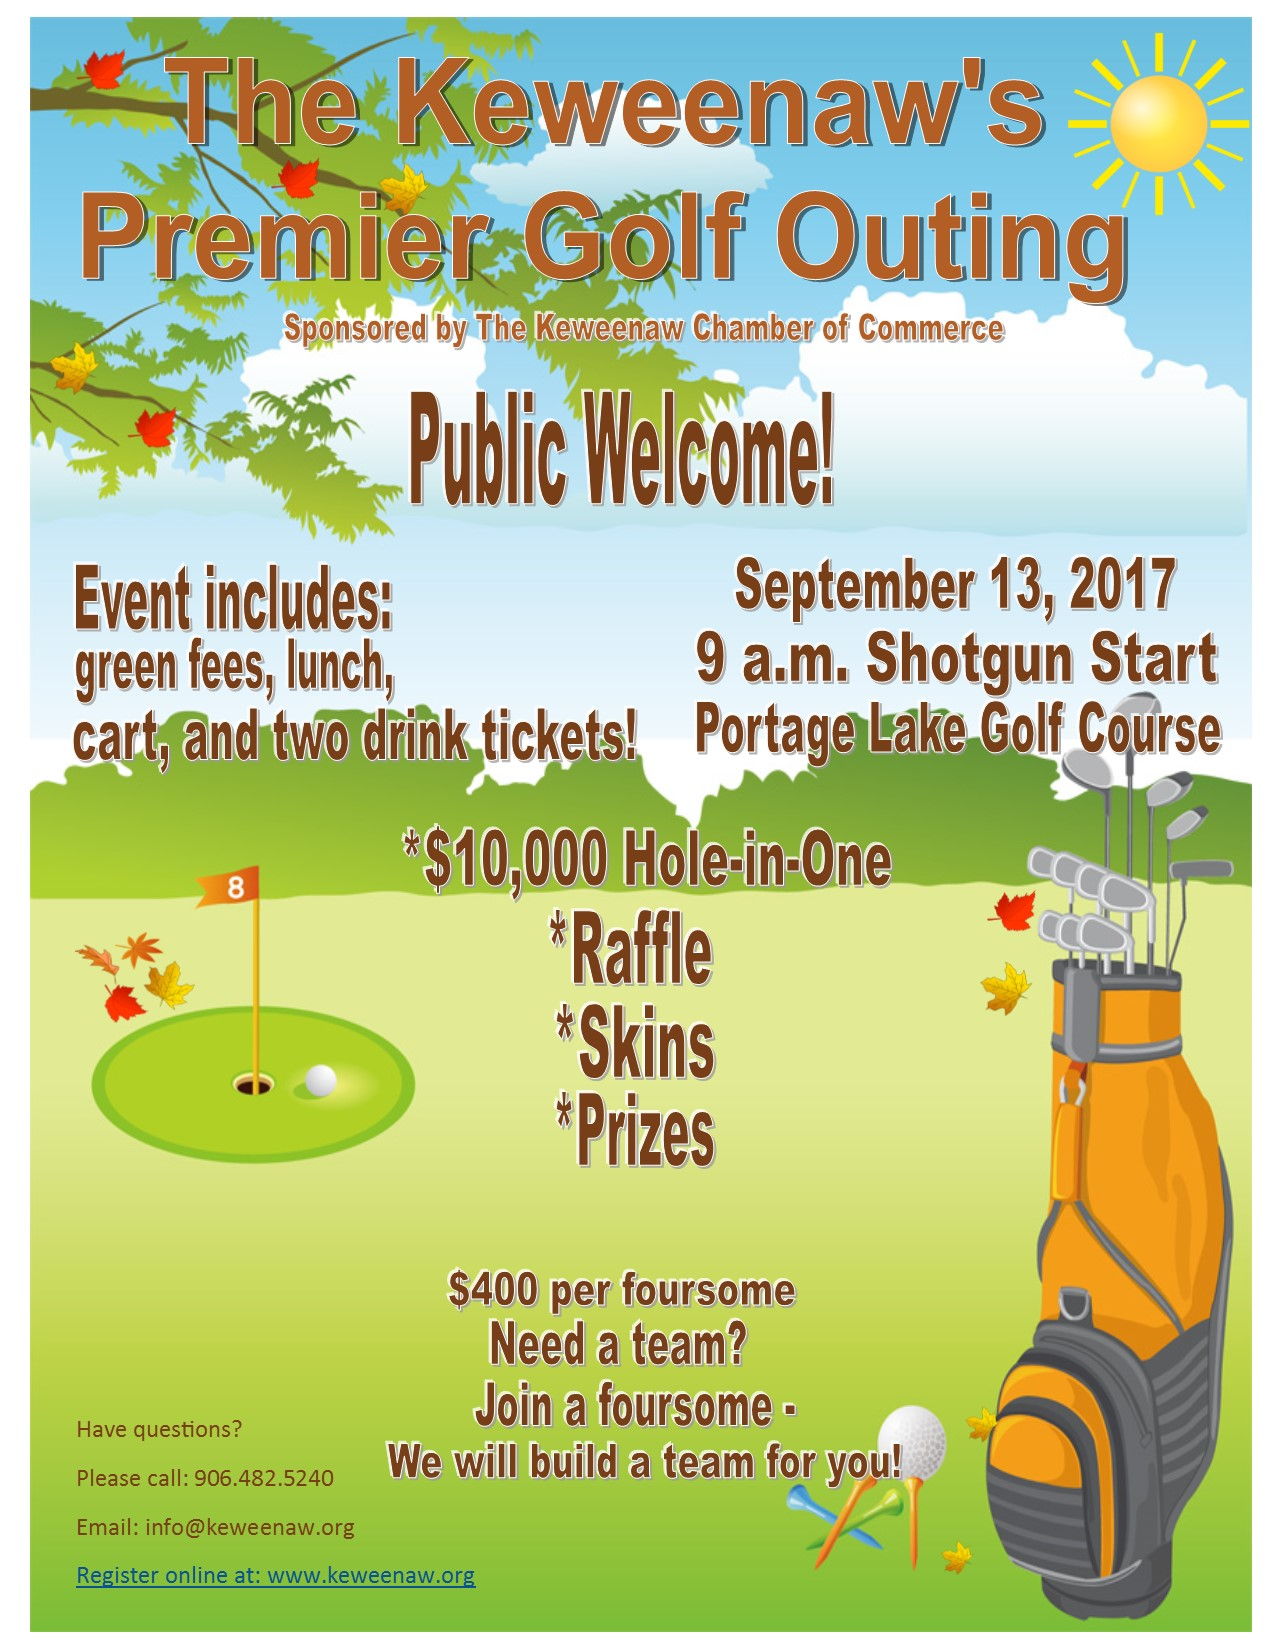 Golf-Outing-2017-Flyer---with-details.jpg